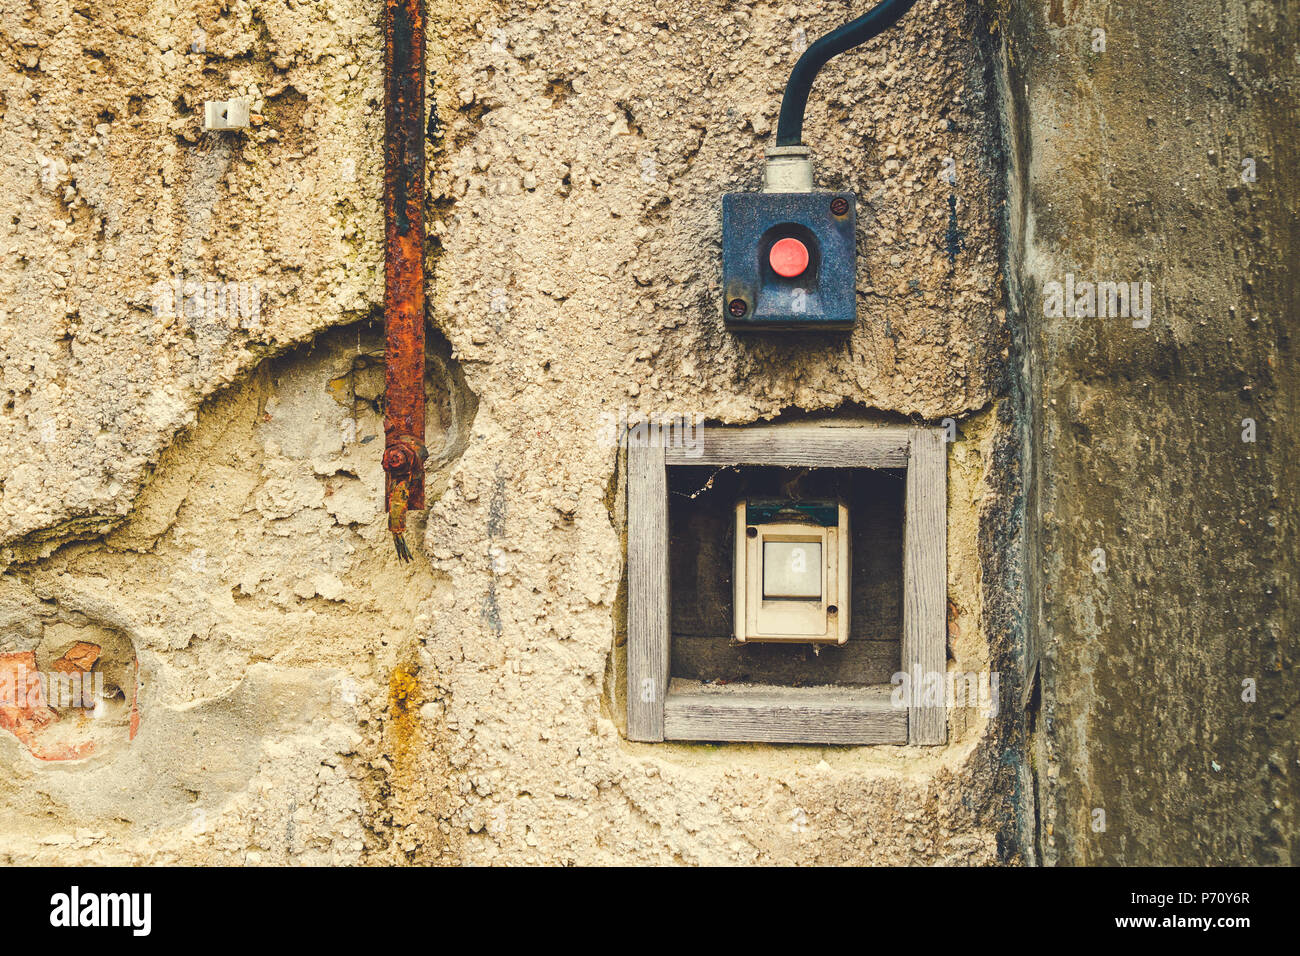 Old Electrical Switch On A Wall Stock Photo 210848367 Alamy Picture